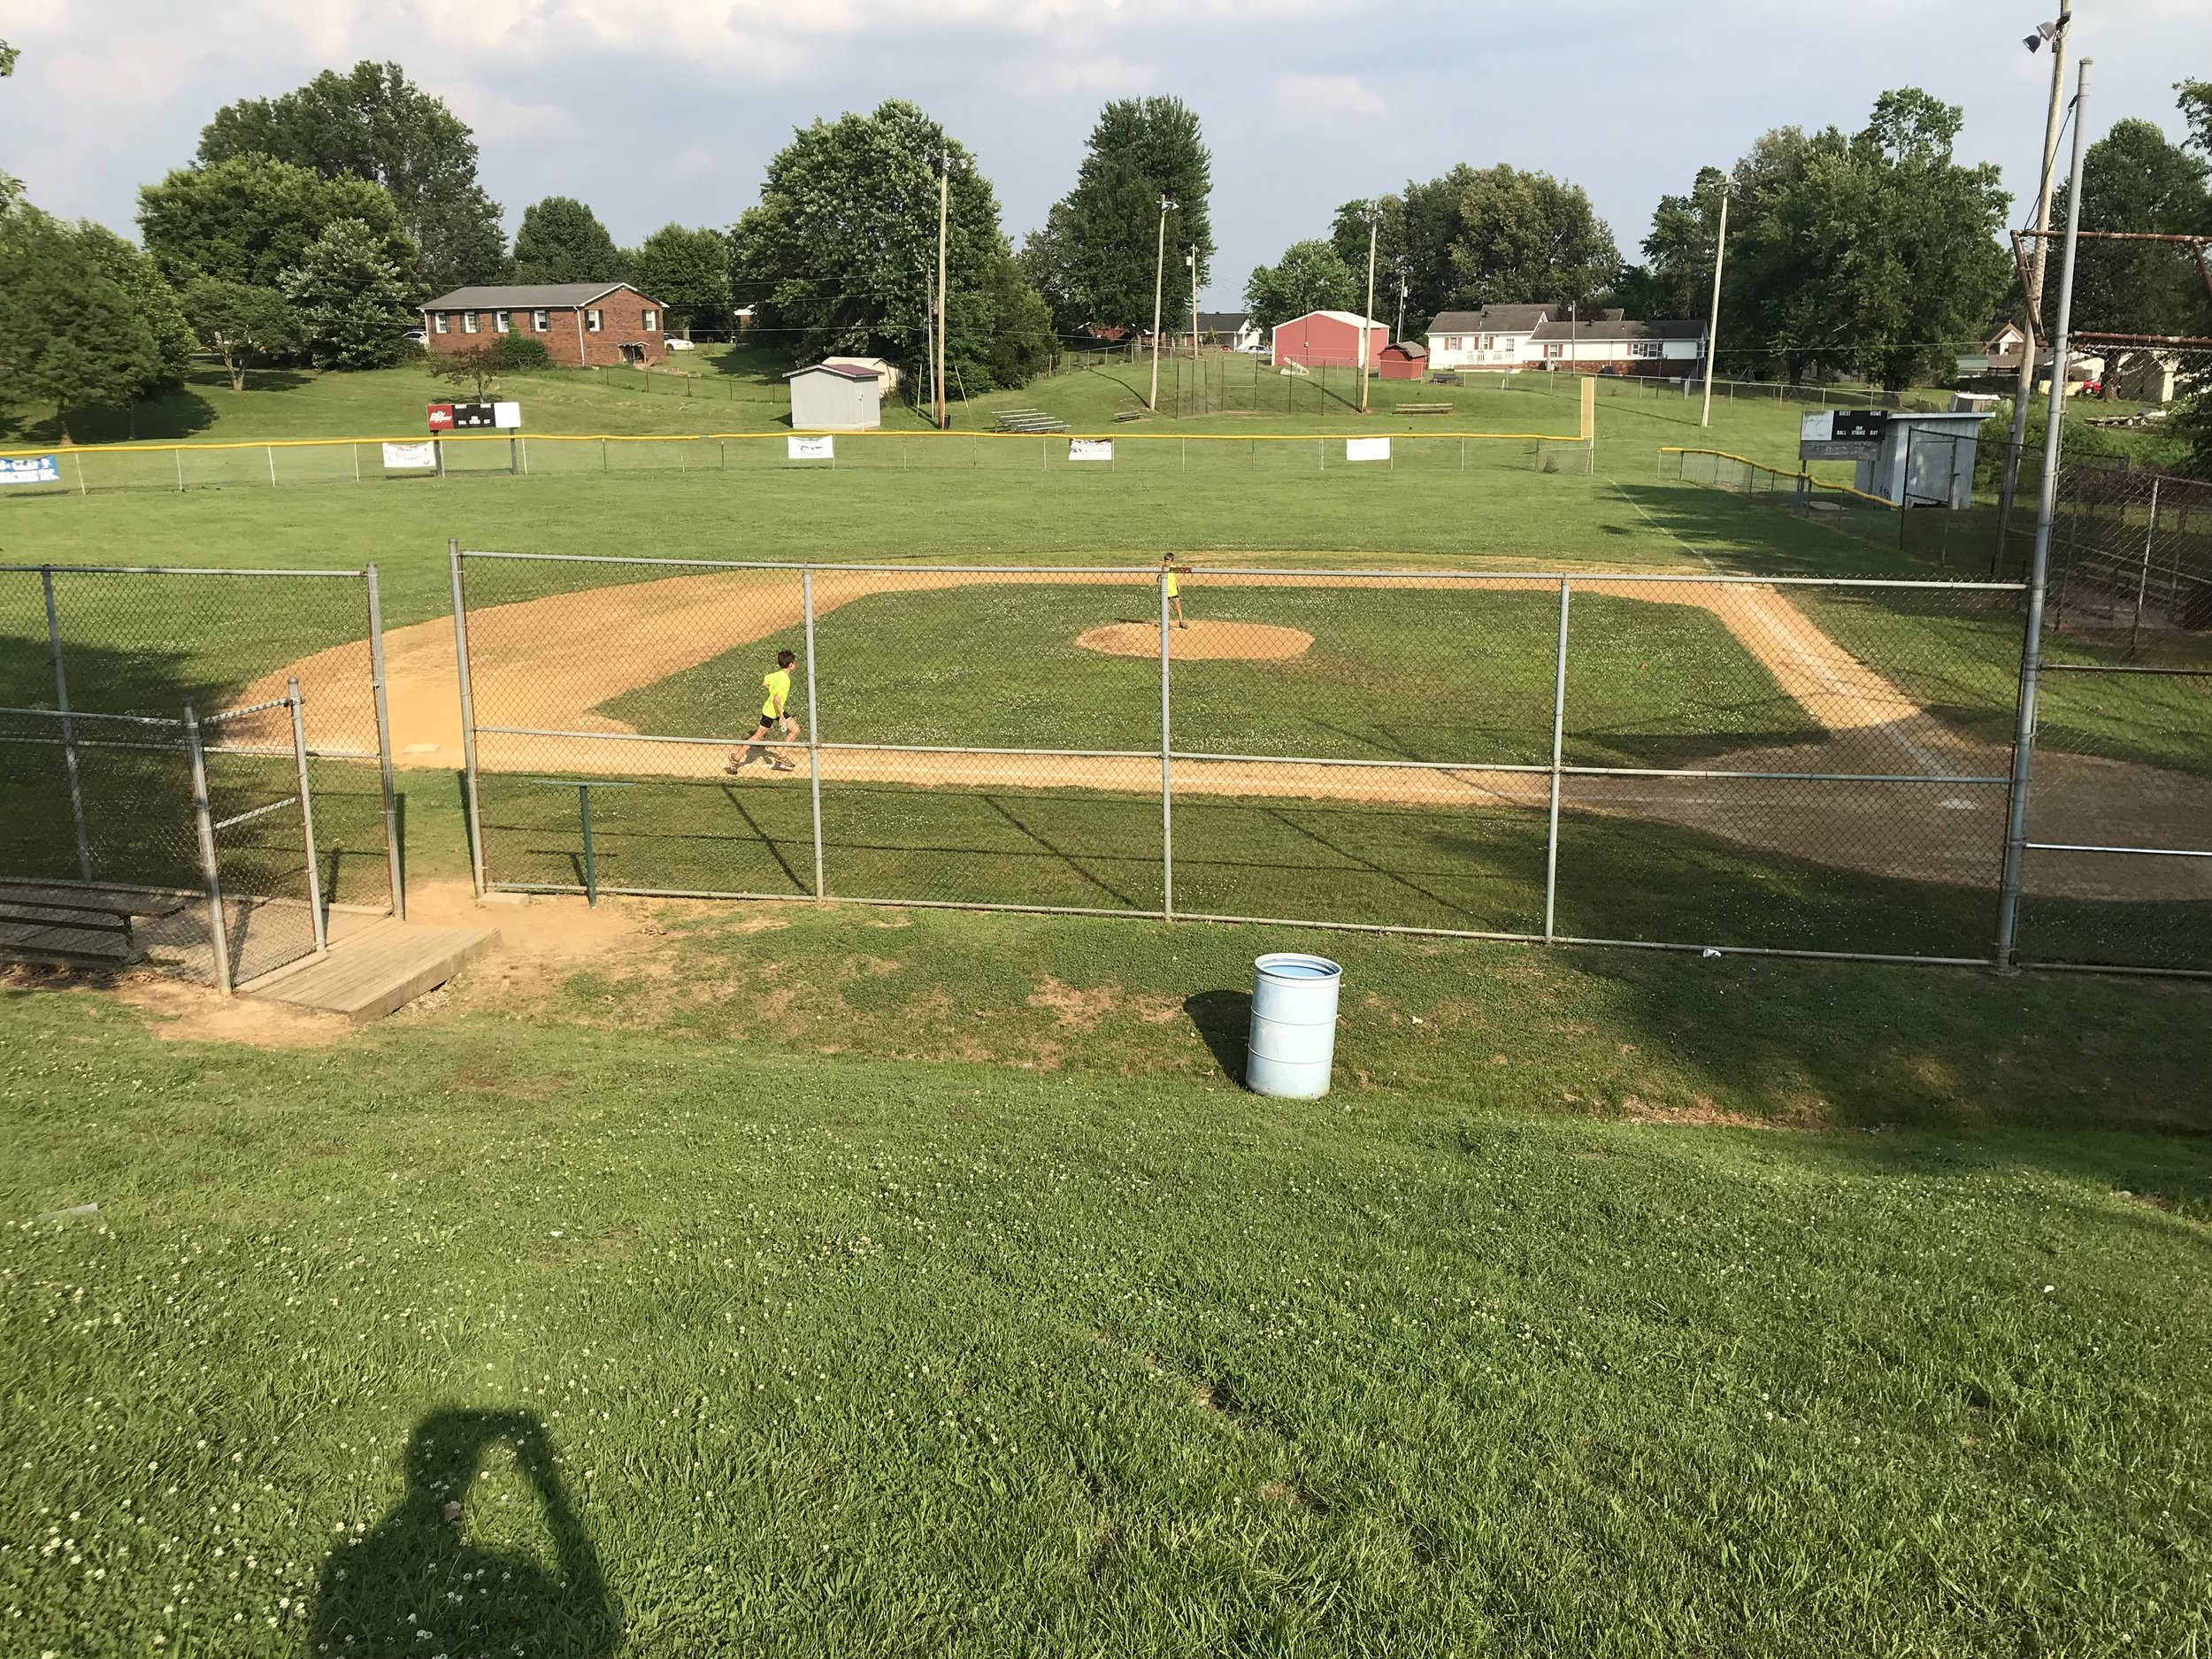 Here is Clay City Park. As a minimal way to show our appreciation, we helped pick up litter all around the park to help them get ready for the baseball and softball games happening the next day.